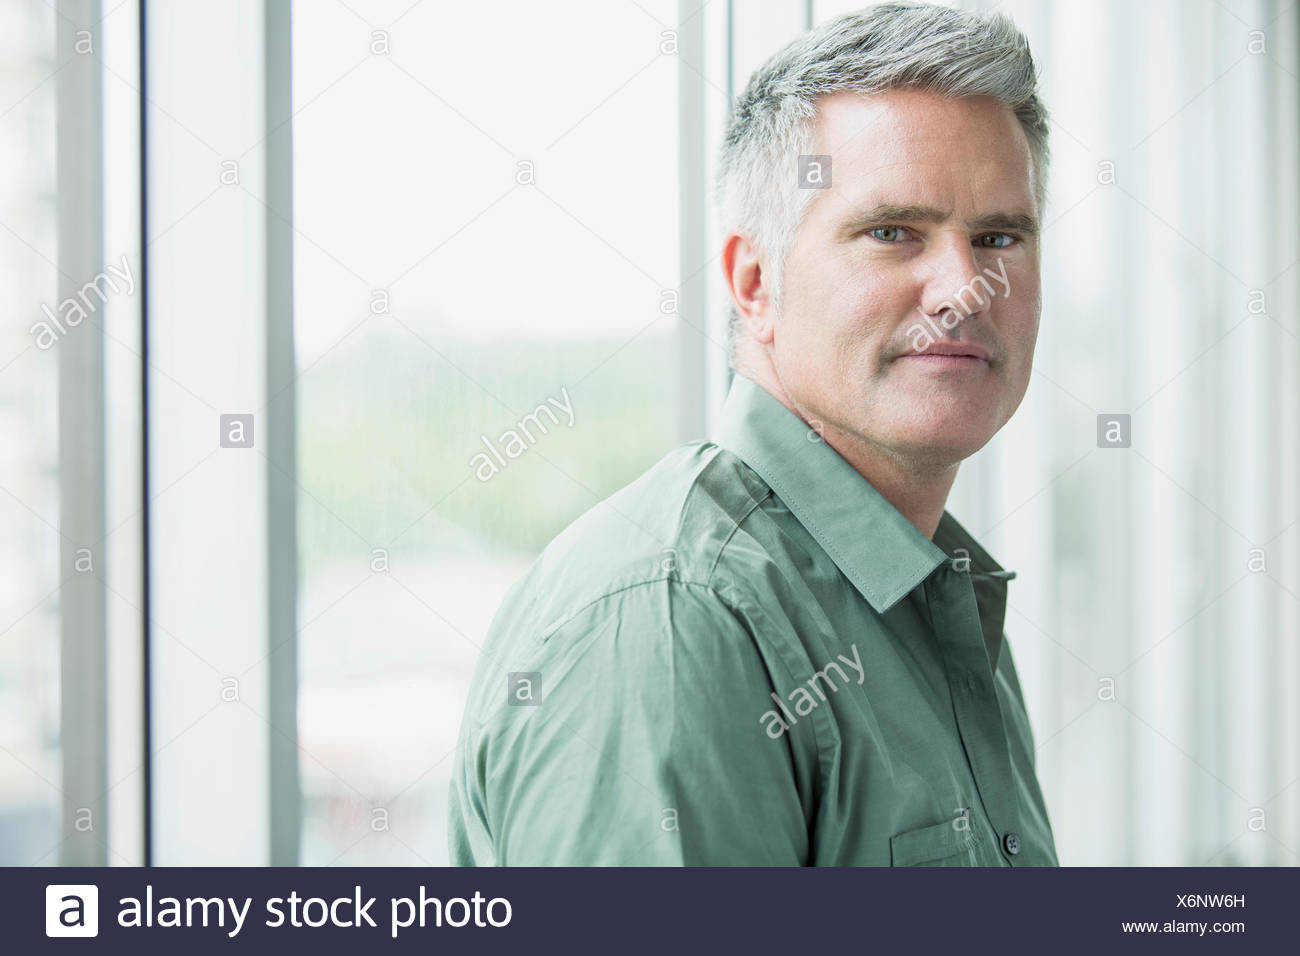 portrait of middle aged businessman with serious look - Stock Image